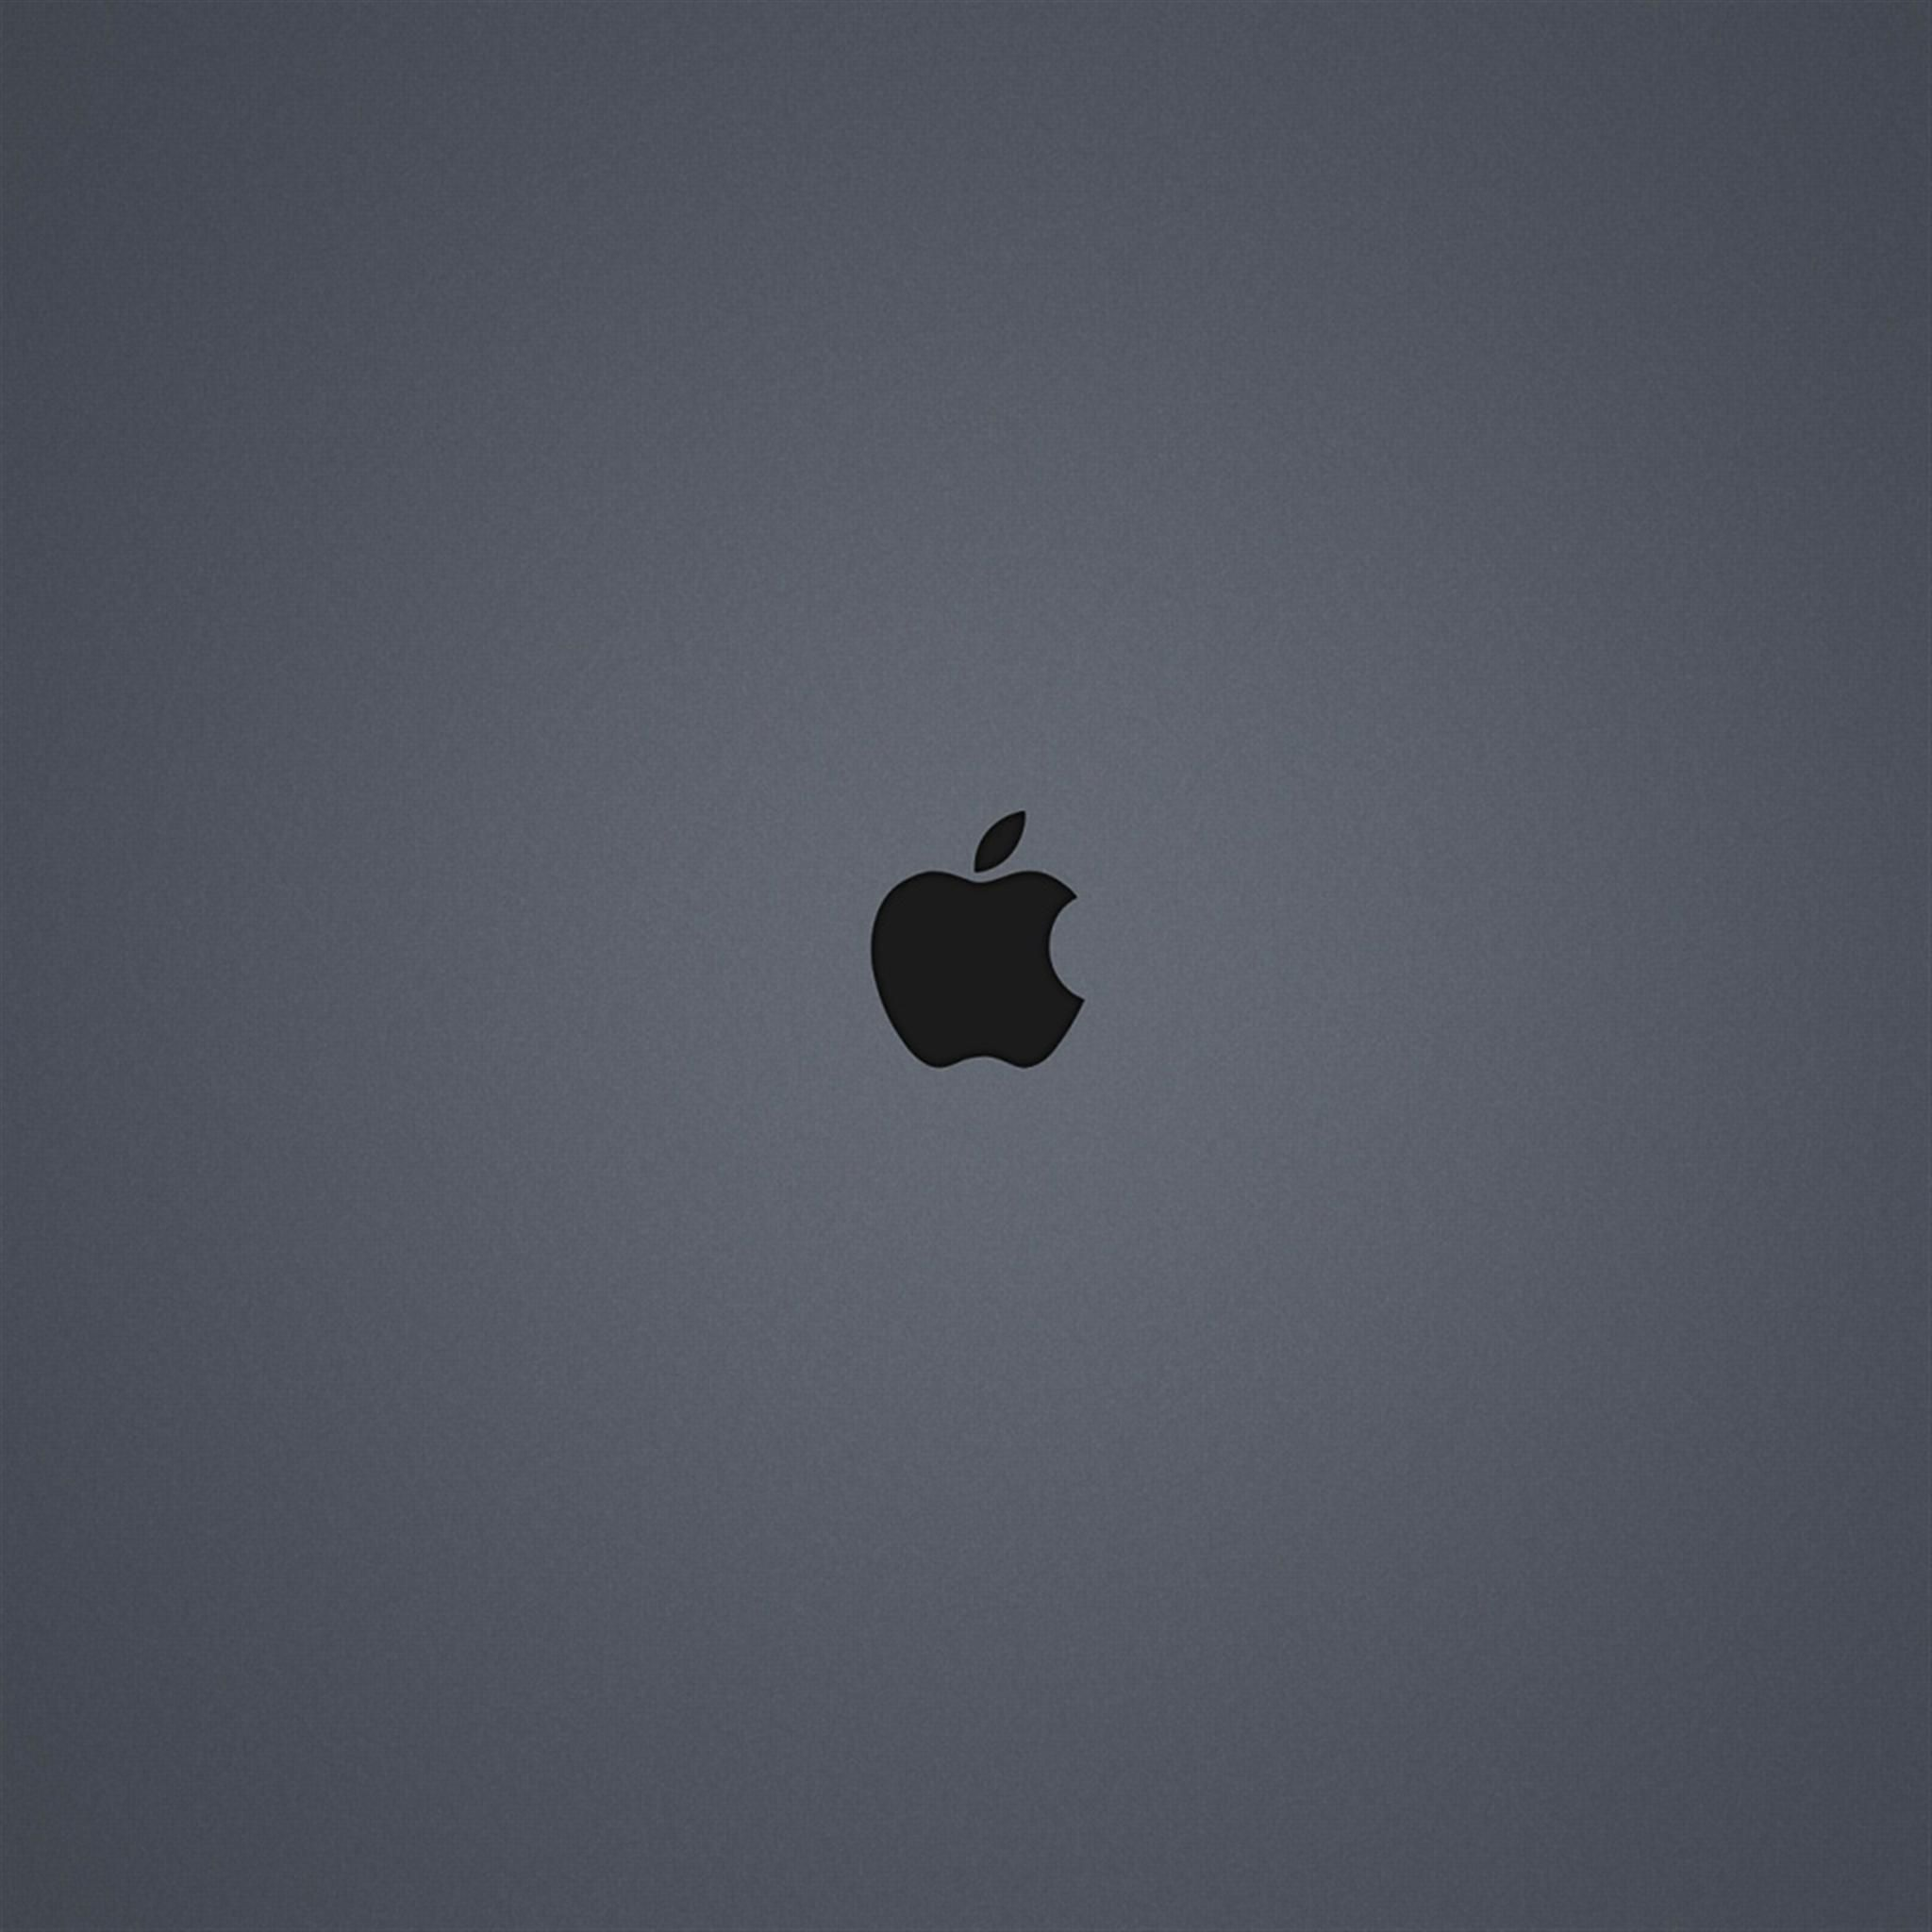 Apple Ipad Air Wallpapers Hd 145 Imagenes Ipad Air Wallpaper